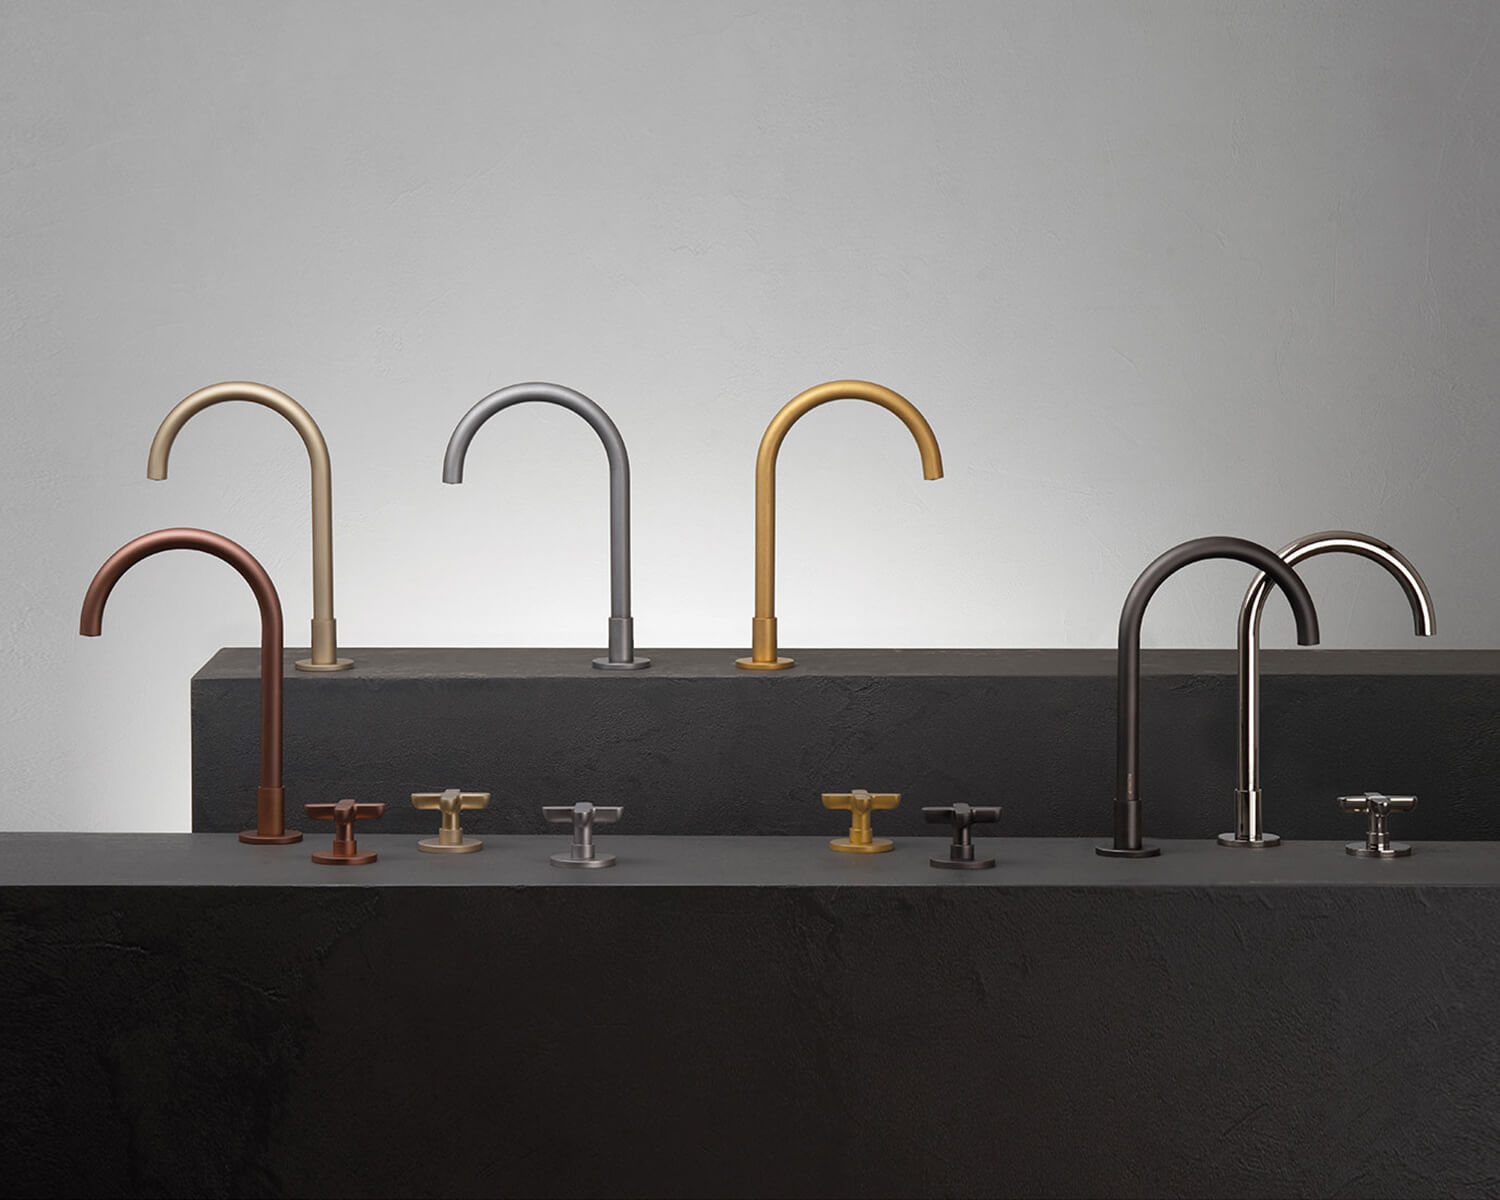 Icona Classic Collection in various PVD finishes: Matte Copper, Matte British Gold, Raw Metal, Pure Brass, Matte Gun Metal & Polished Nickel, arranged on 2 grey stone plinths of different heights